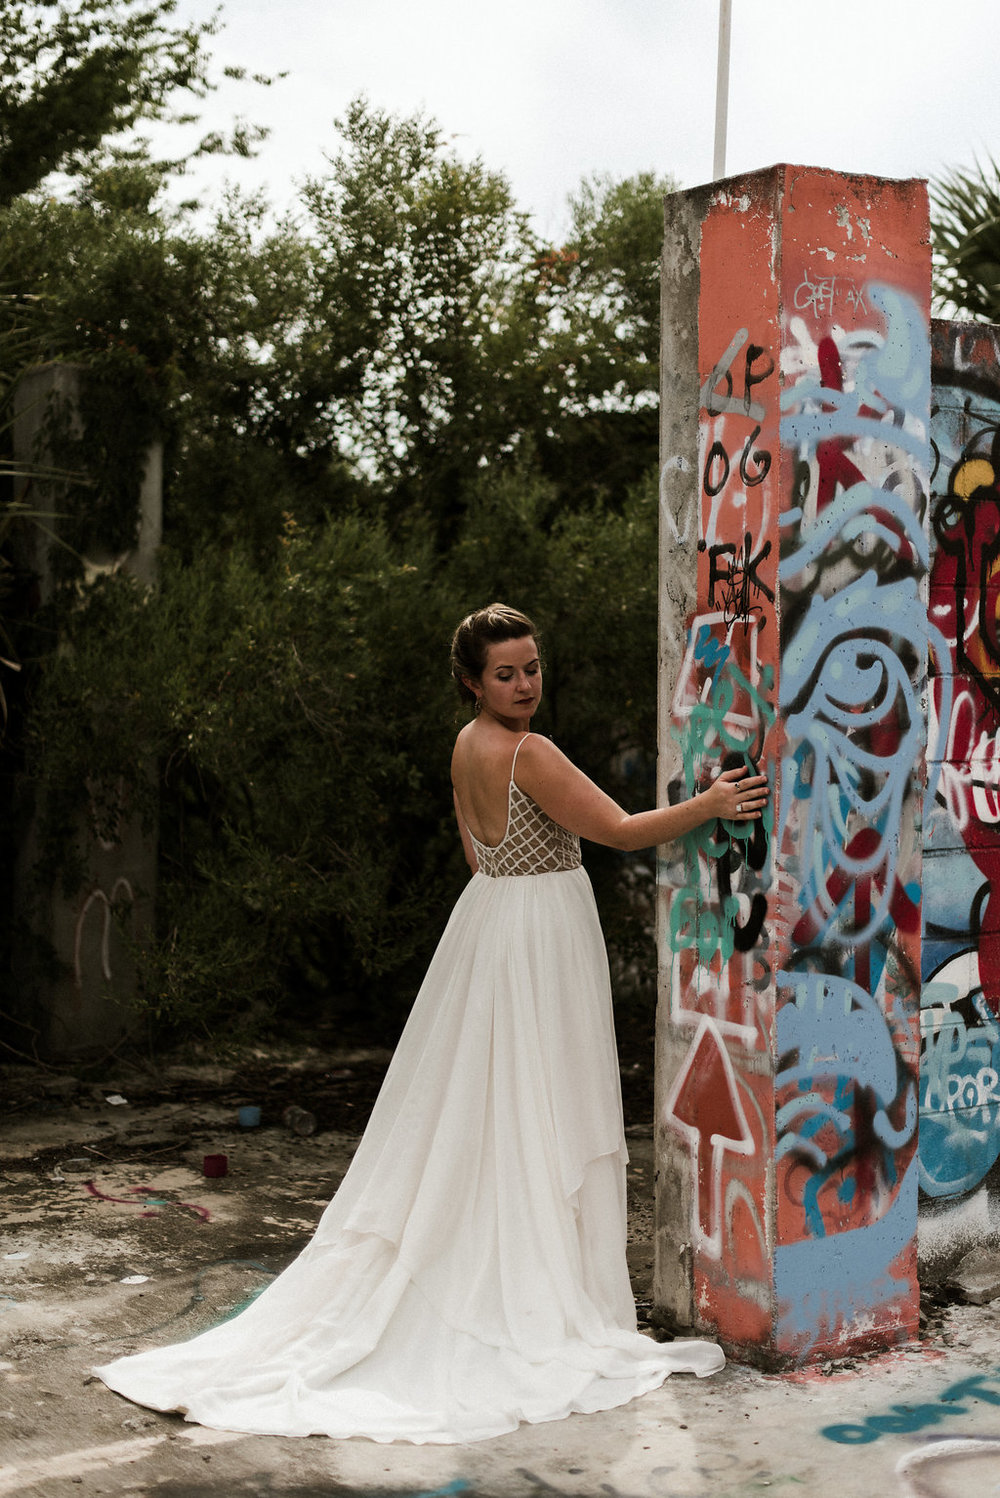 Savannah-Stonehenge-lauren-imus-photography-savannah-wedding-photographer-blush-by-hayley-paige-honeycomb-ivory-and-beau-bridal-boutique-savannah-wedding-dresses-savannah-bridal-boutique-savannah-wedding-planner-savannah-florist-graffiti-wedding-24.jpg